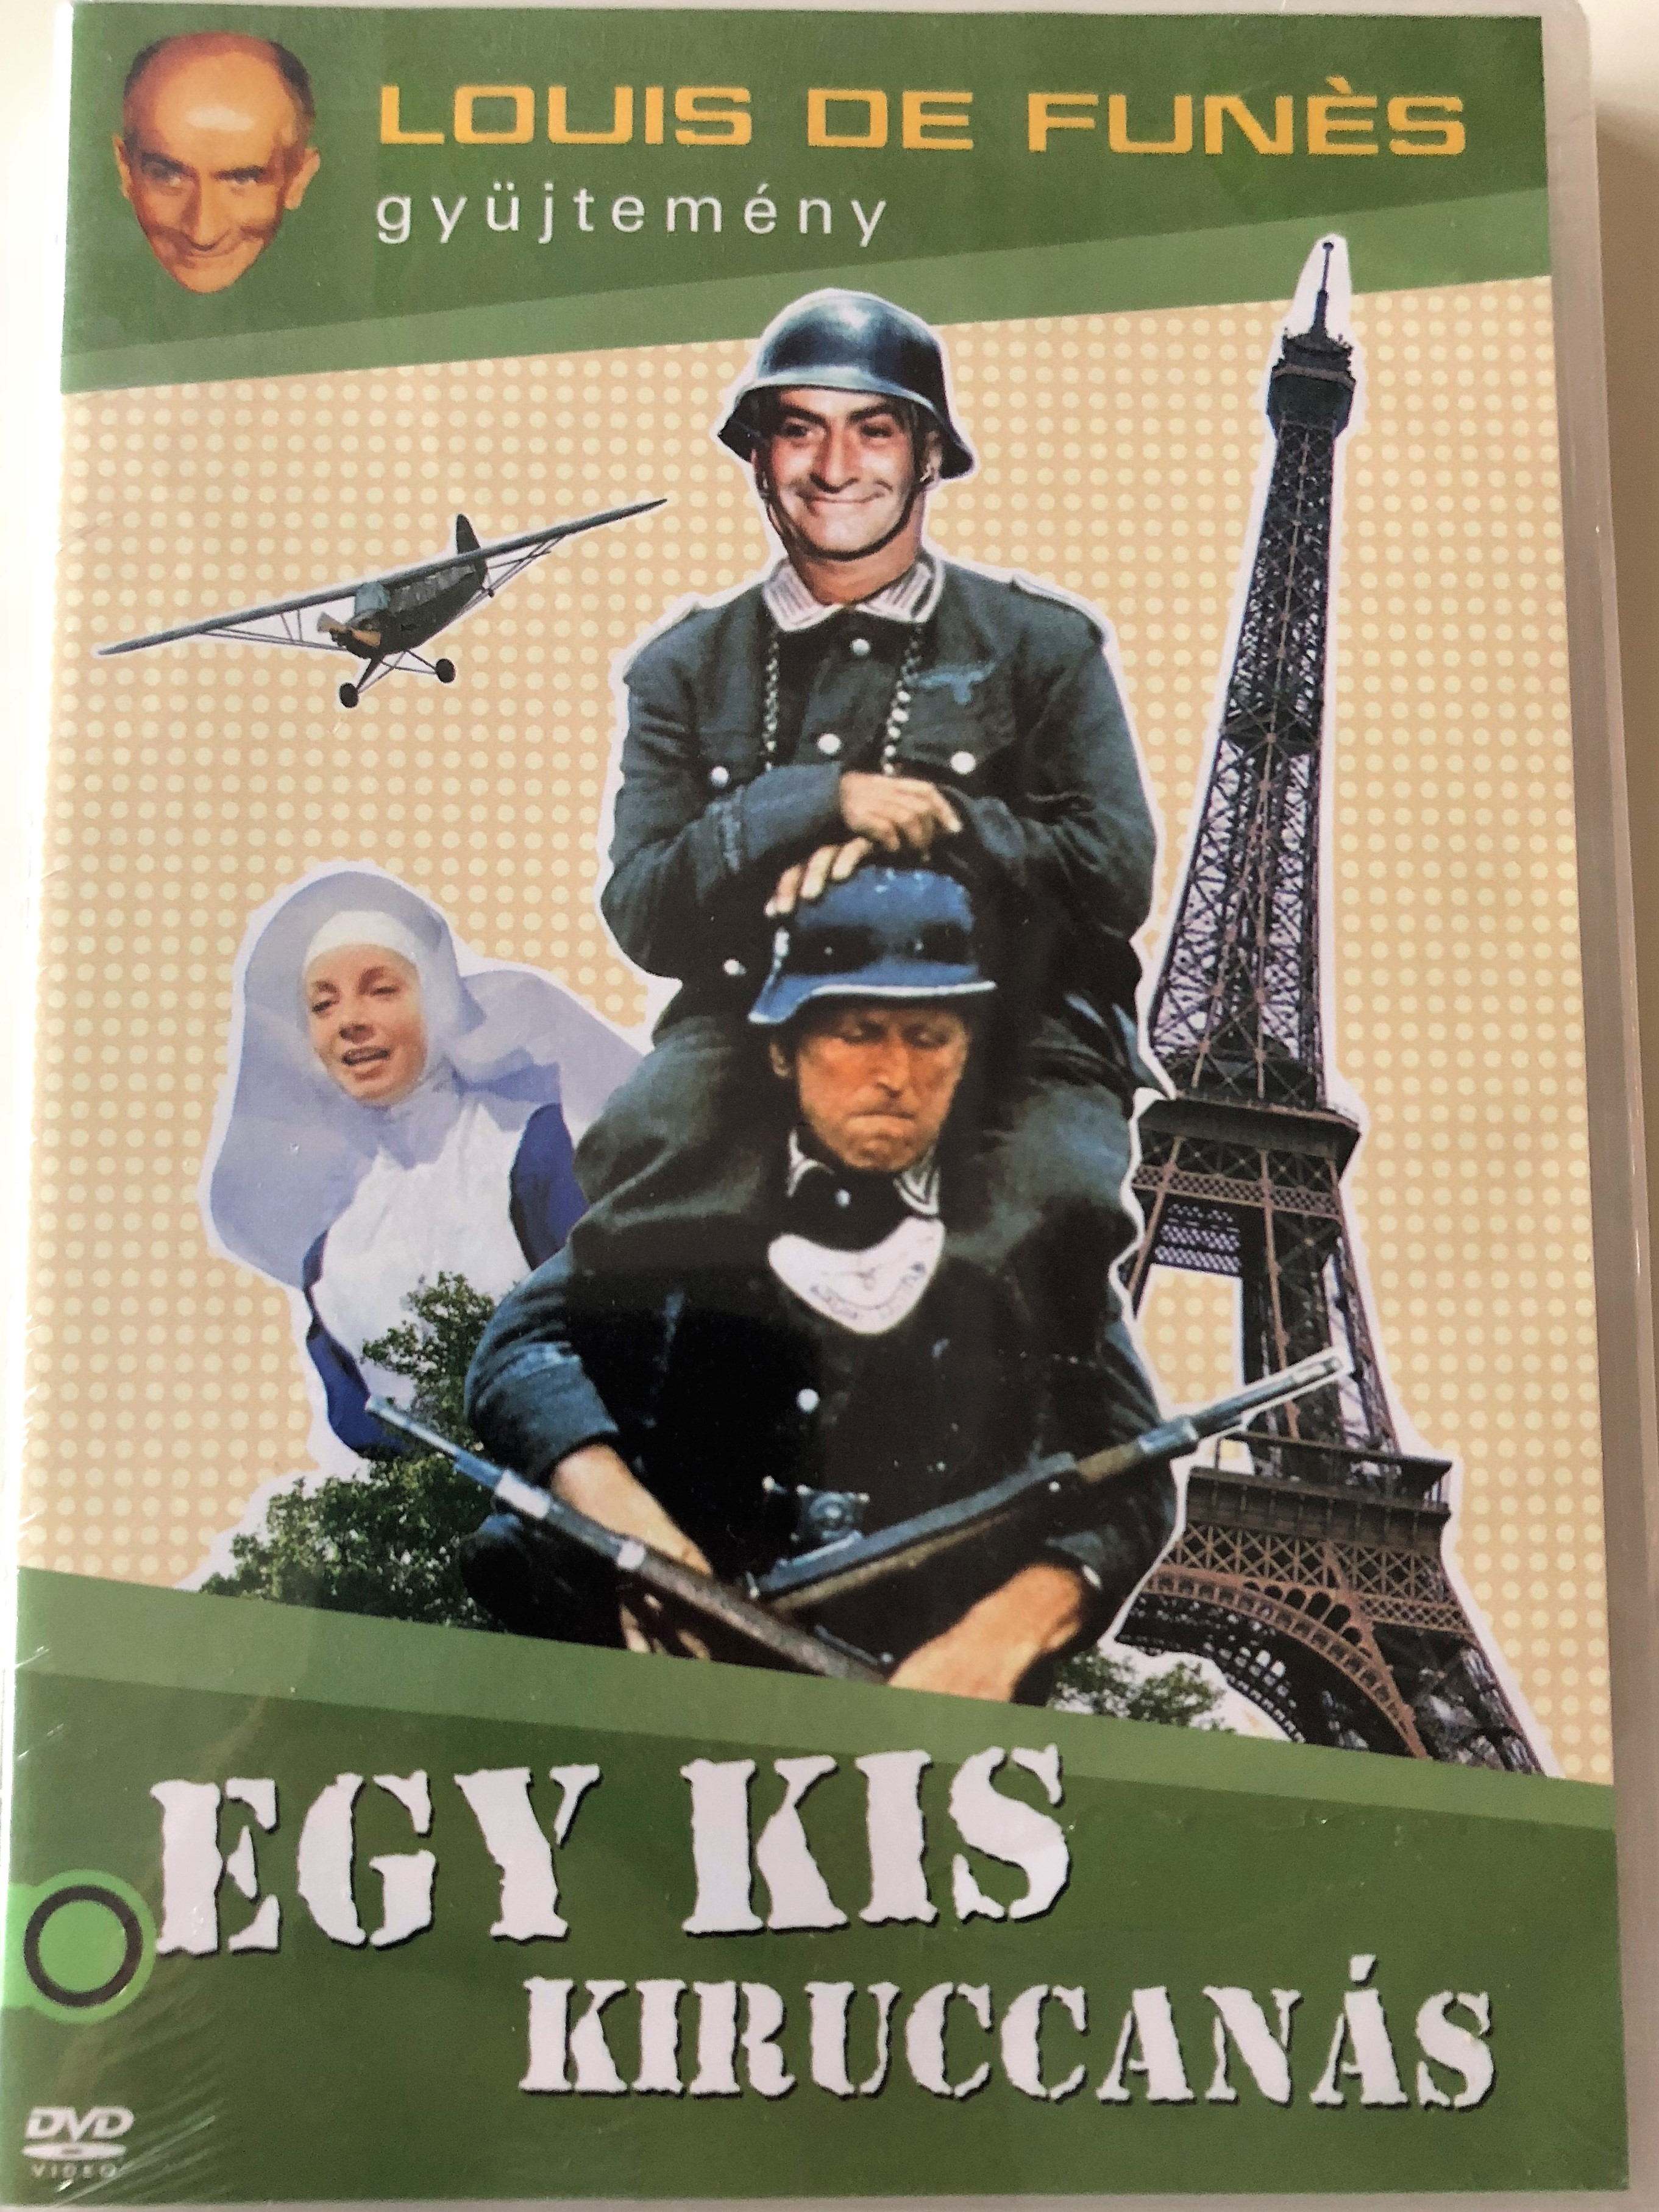 la-grande-vadrouille-dvd-1966-egy-kis-kiruccan-s-directed-by-g-rard-oury-starring-bourvil-louis-de-fun-s-claudio-brook-terry-thomas-louis-de-fun-s-collection-1-.jpg